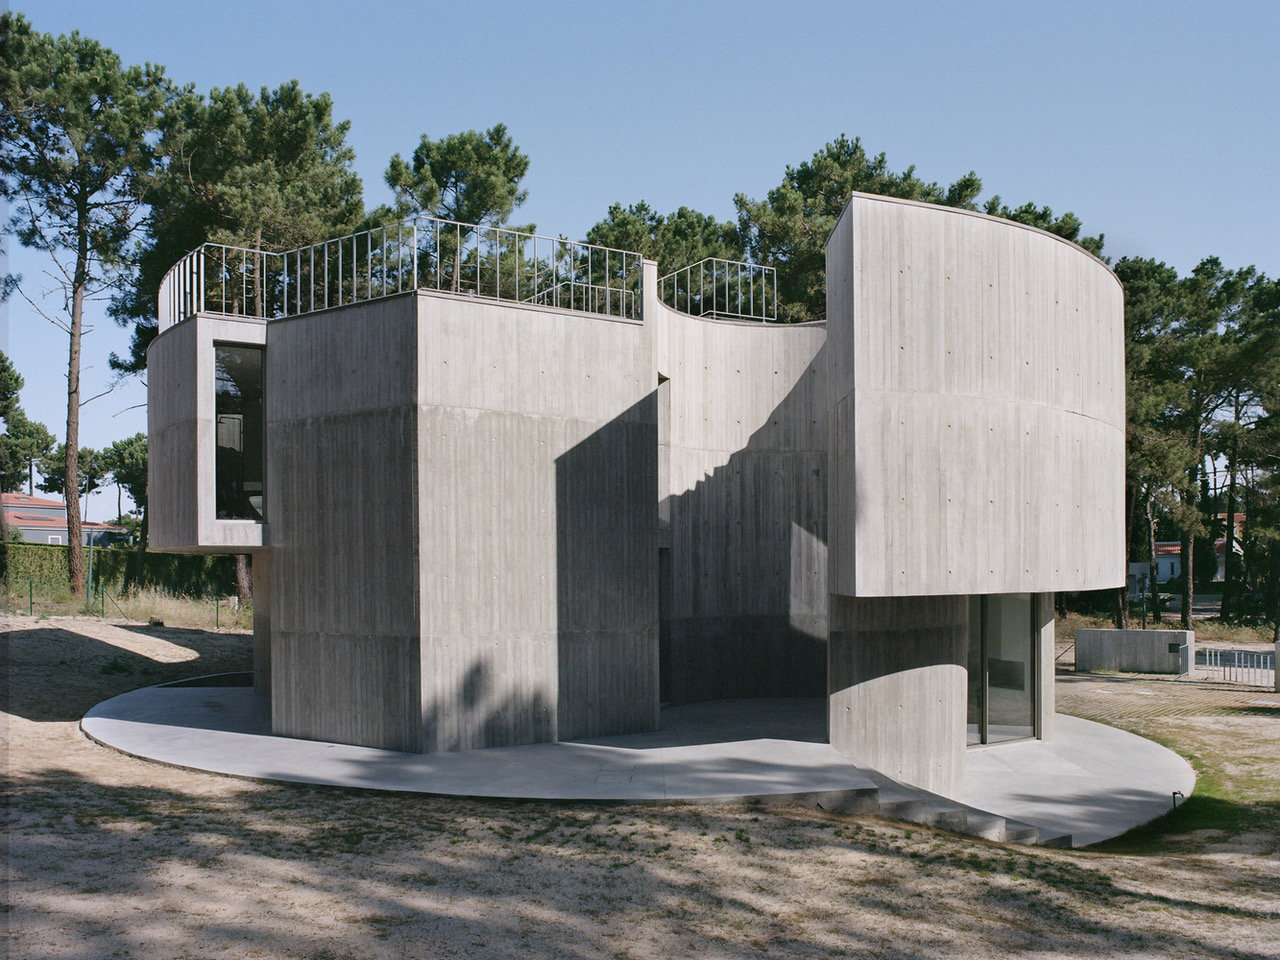 Casa Trevo: Monolithic Retirement Residence With a Rooftop Pool